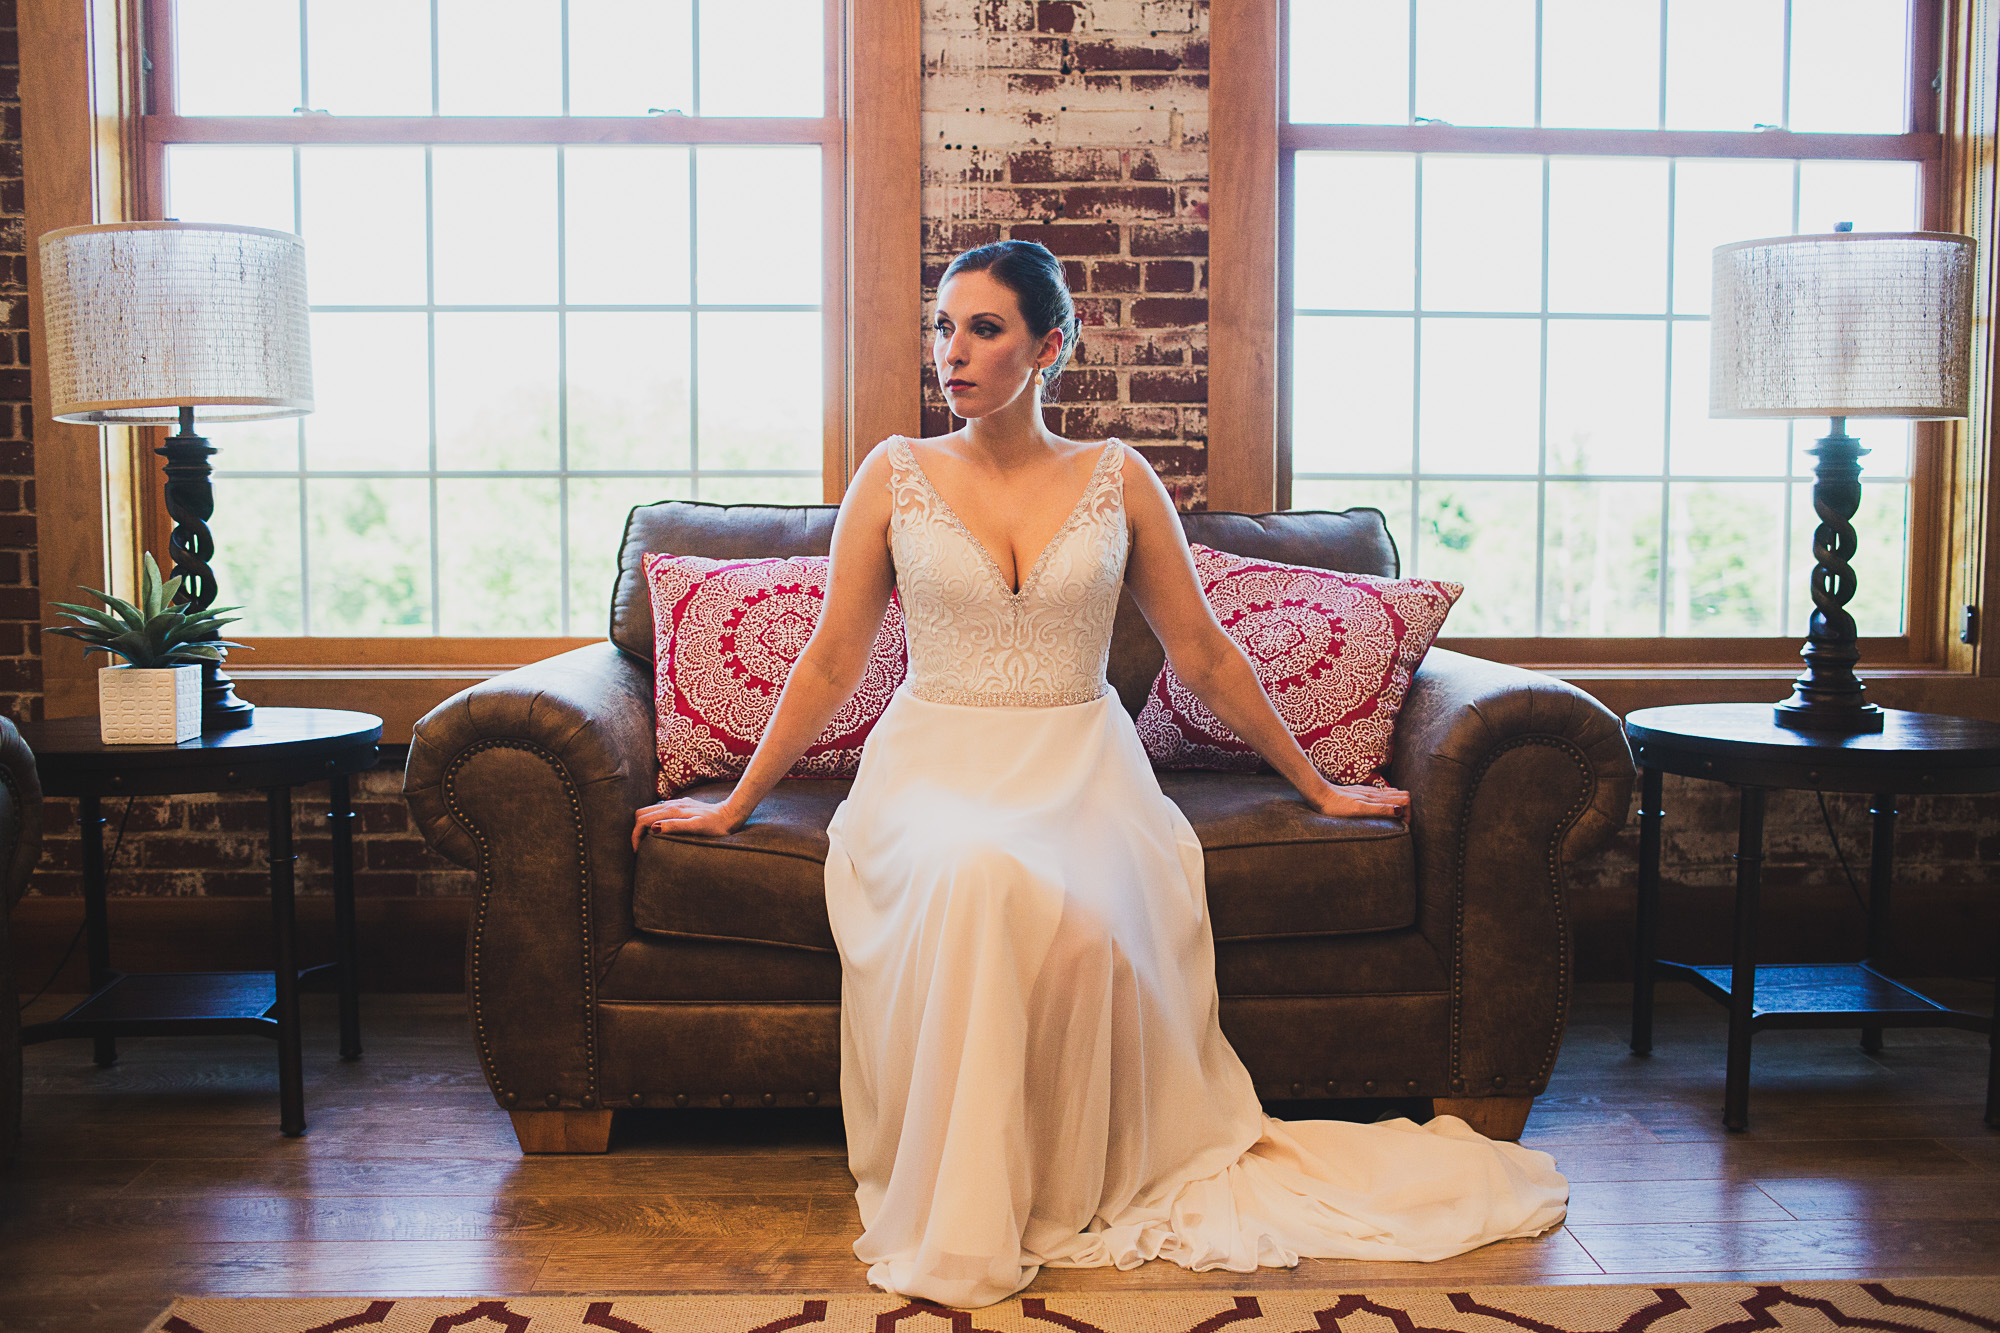 Rusty Rail Brewing Company Wedding Photographer